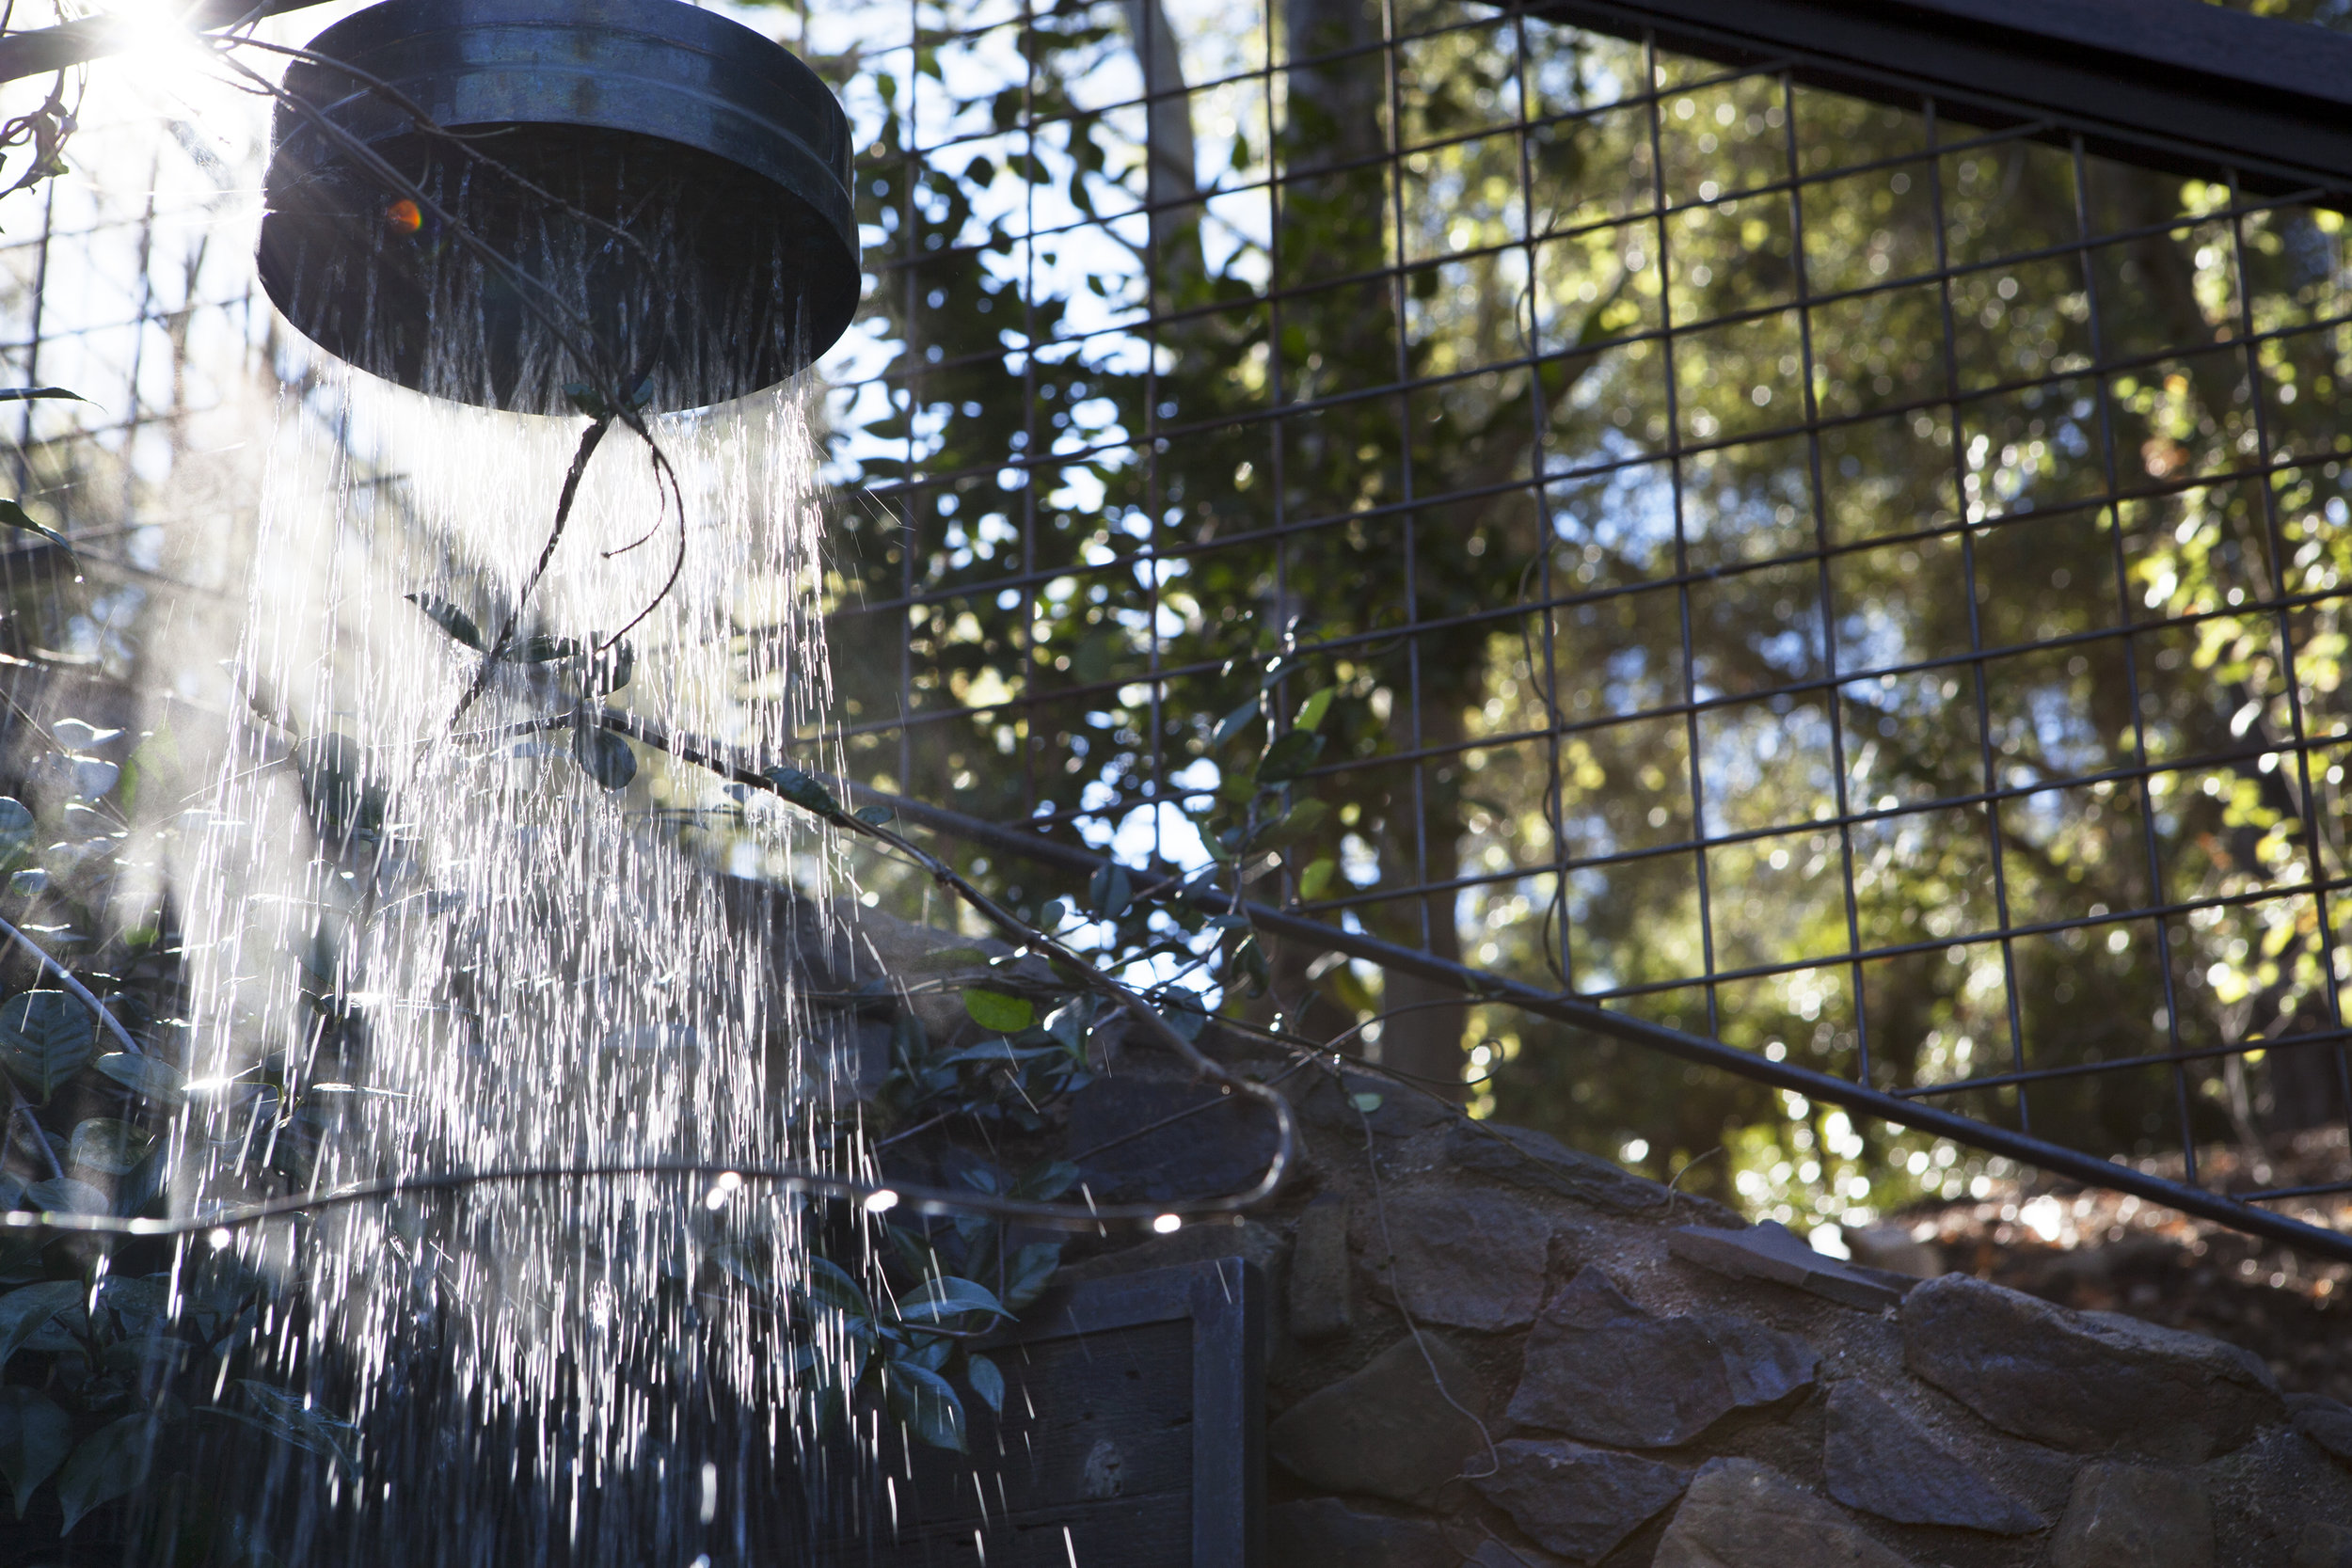 Outdoor shower luxury outdoor living feature - Topanga Canyon - Los Angeles garden design by Campion Walker Landscapes